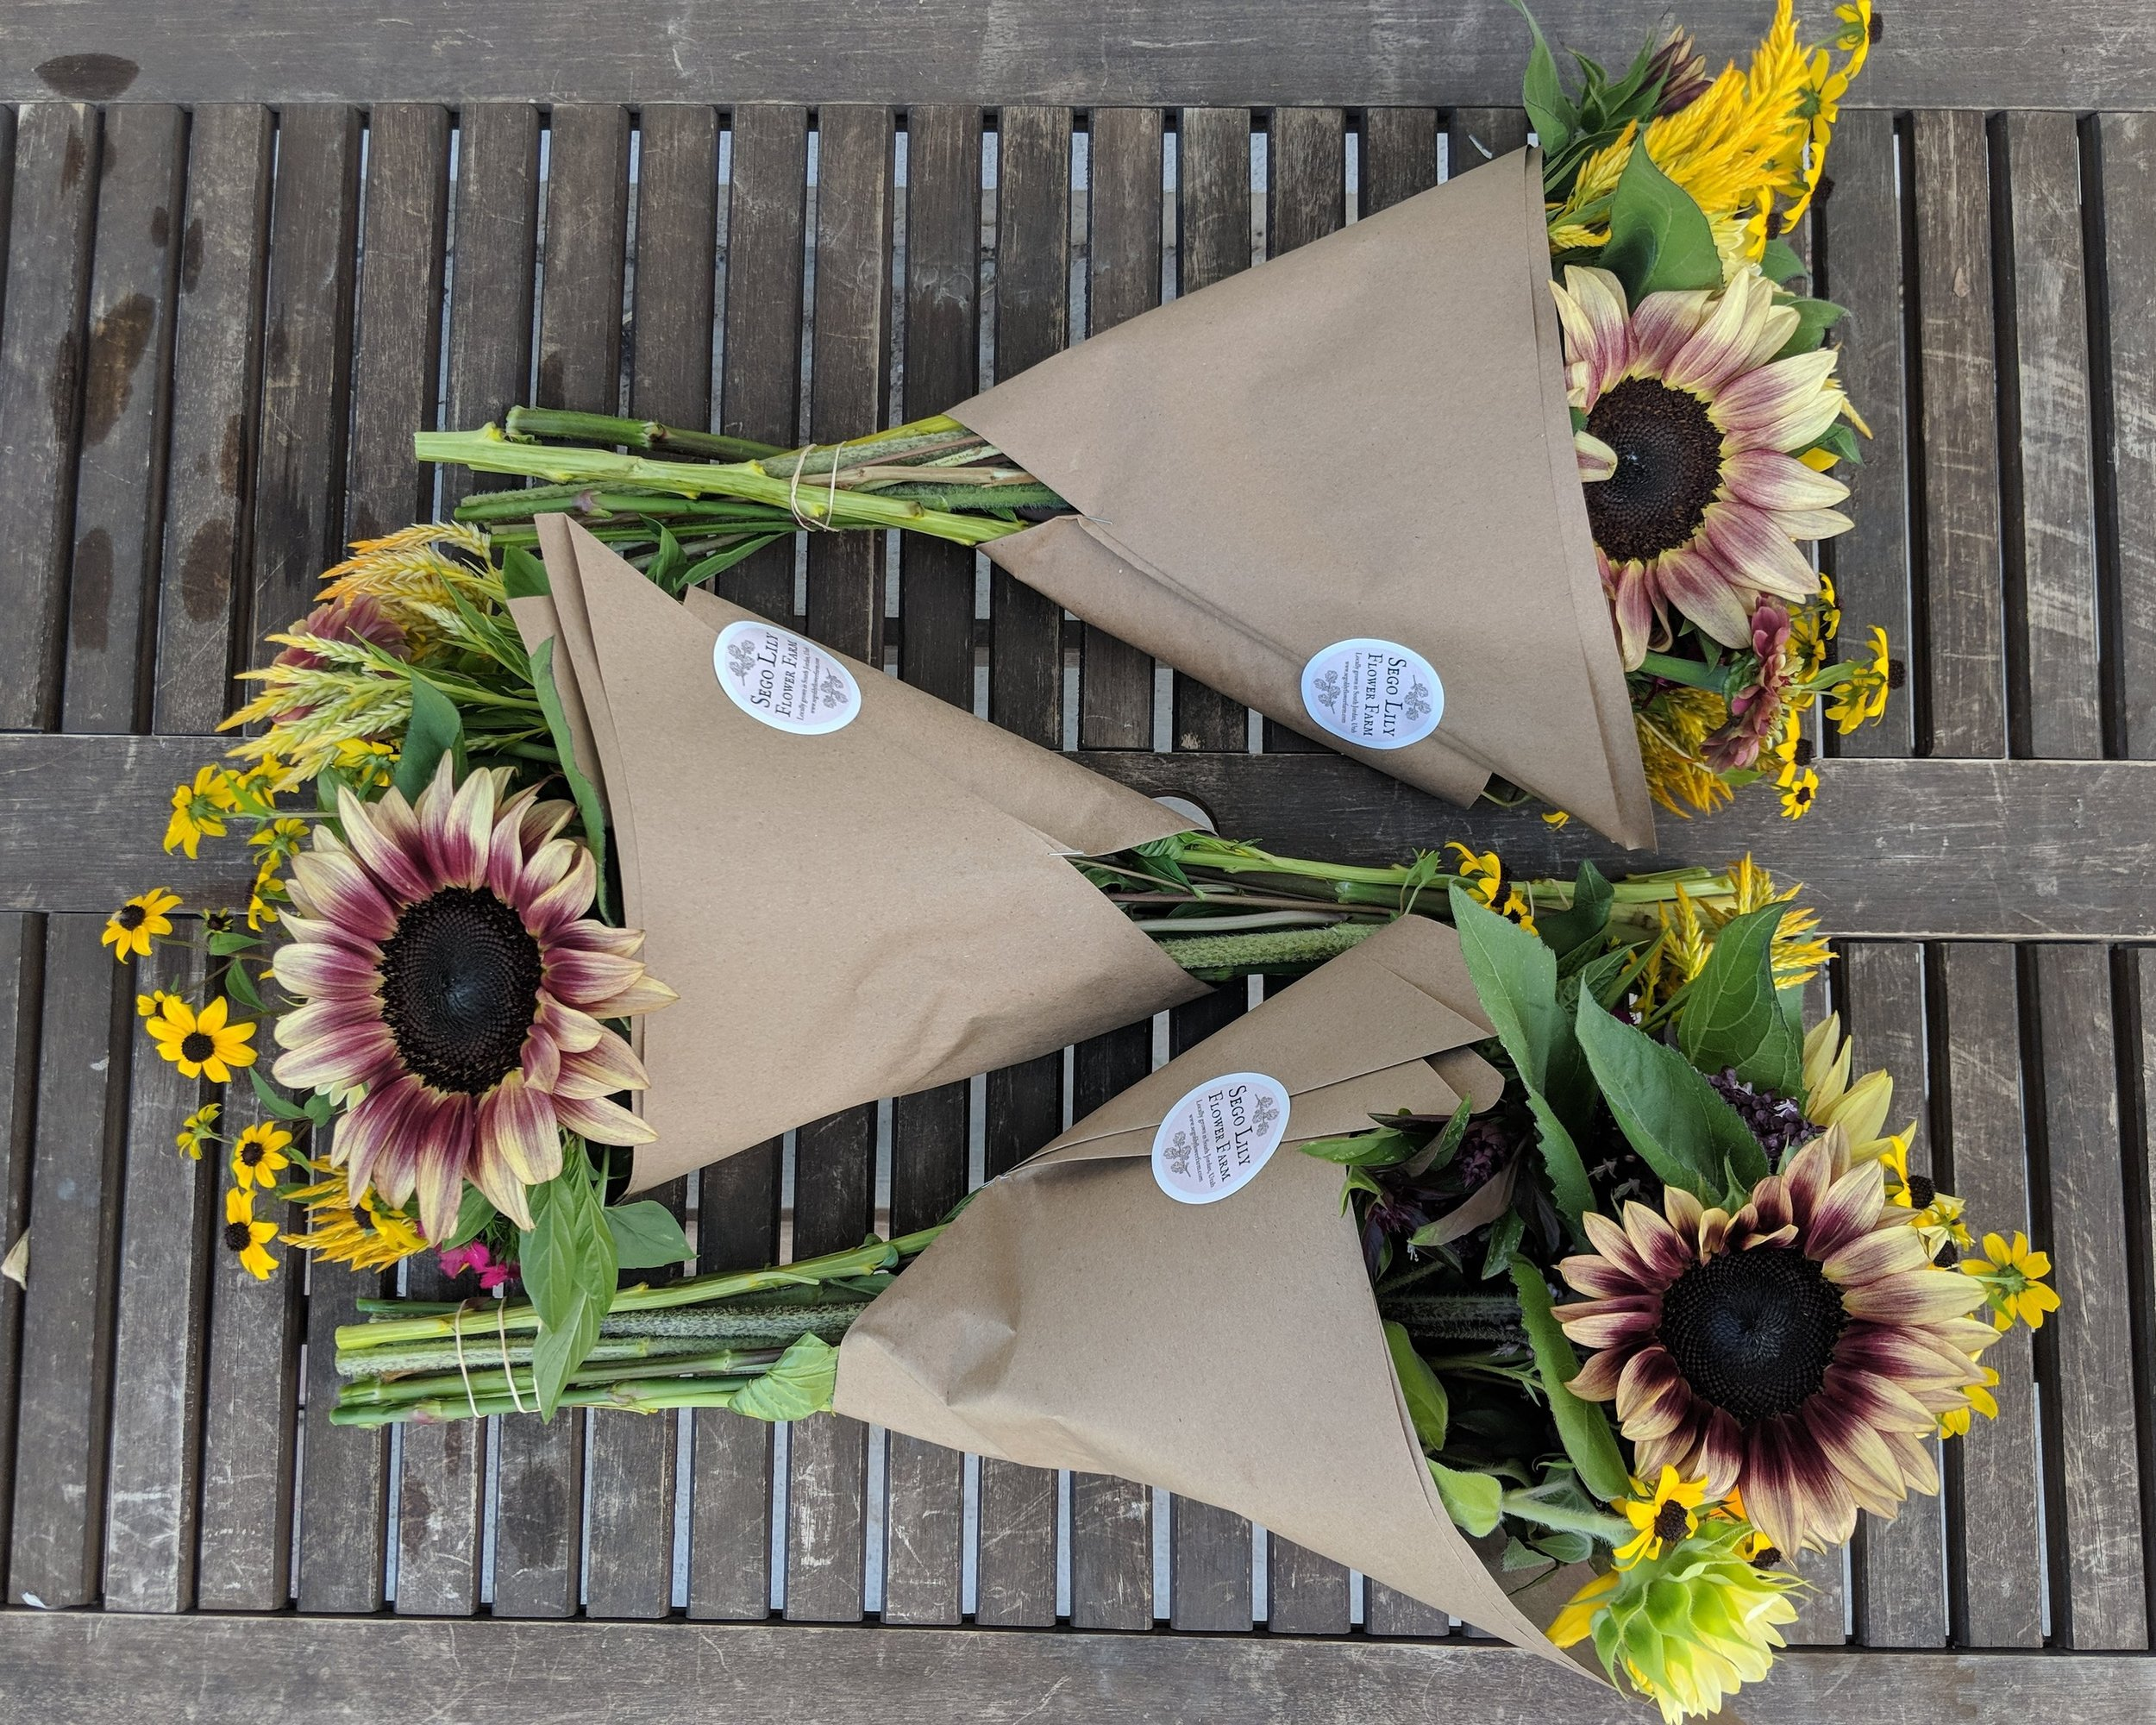 Late summer subscription bouquets.